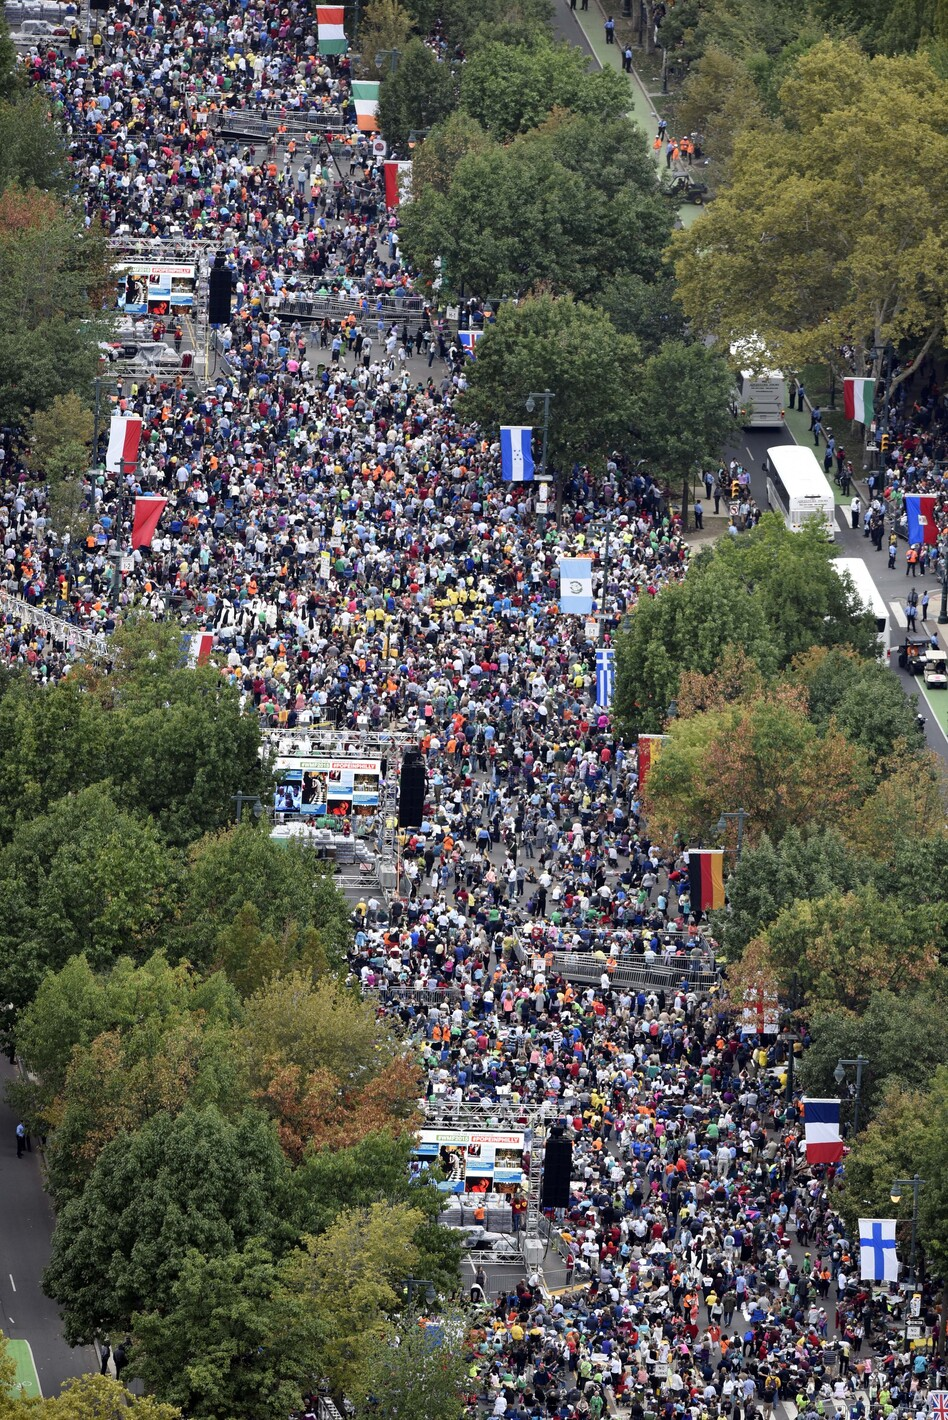 People gather on the Benjamin Franklin Parkway before the Papal Mass on Sunday in Philadelphia. (Michael Perez/AP)